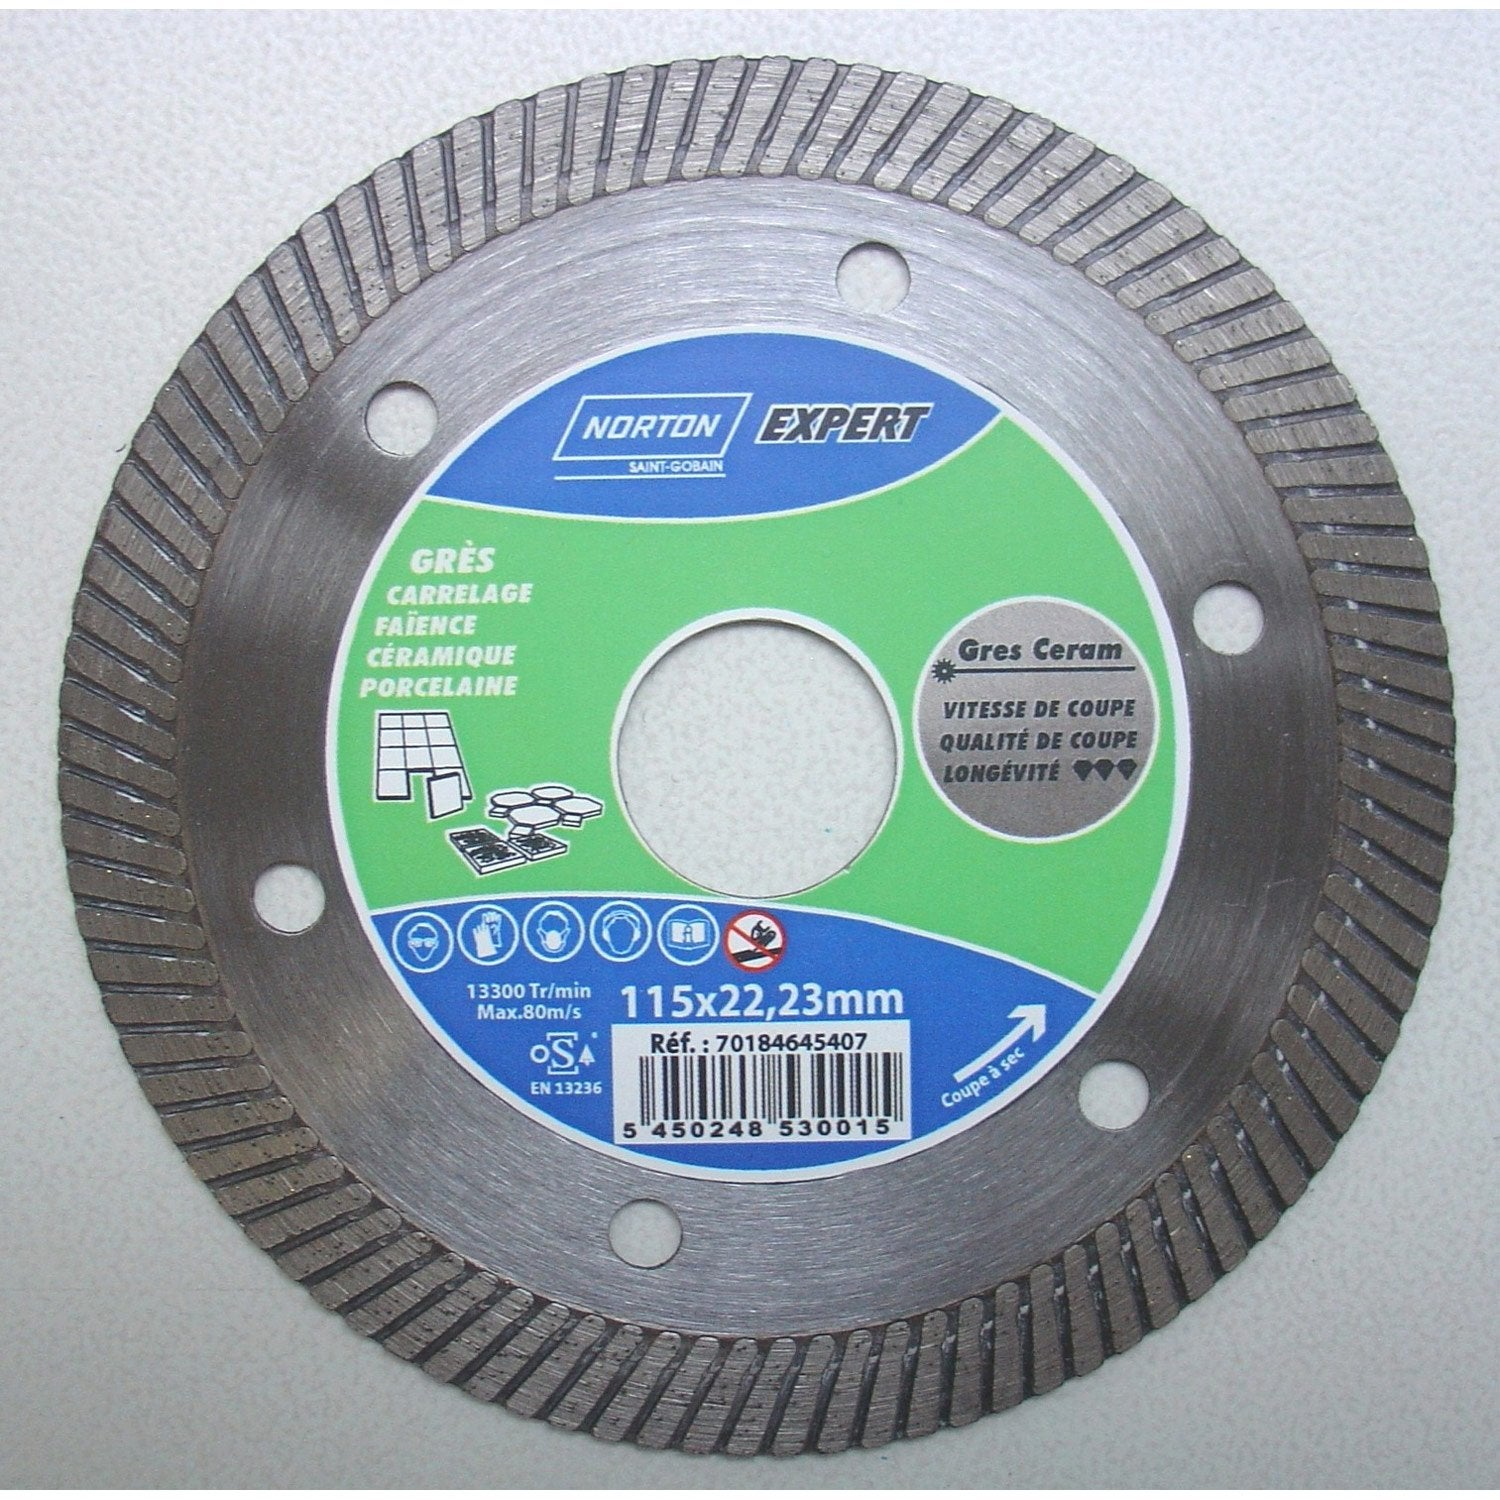 Disque pour poncer le beton leroy merlin - Ponceuse beton leroy merlin ...